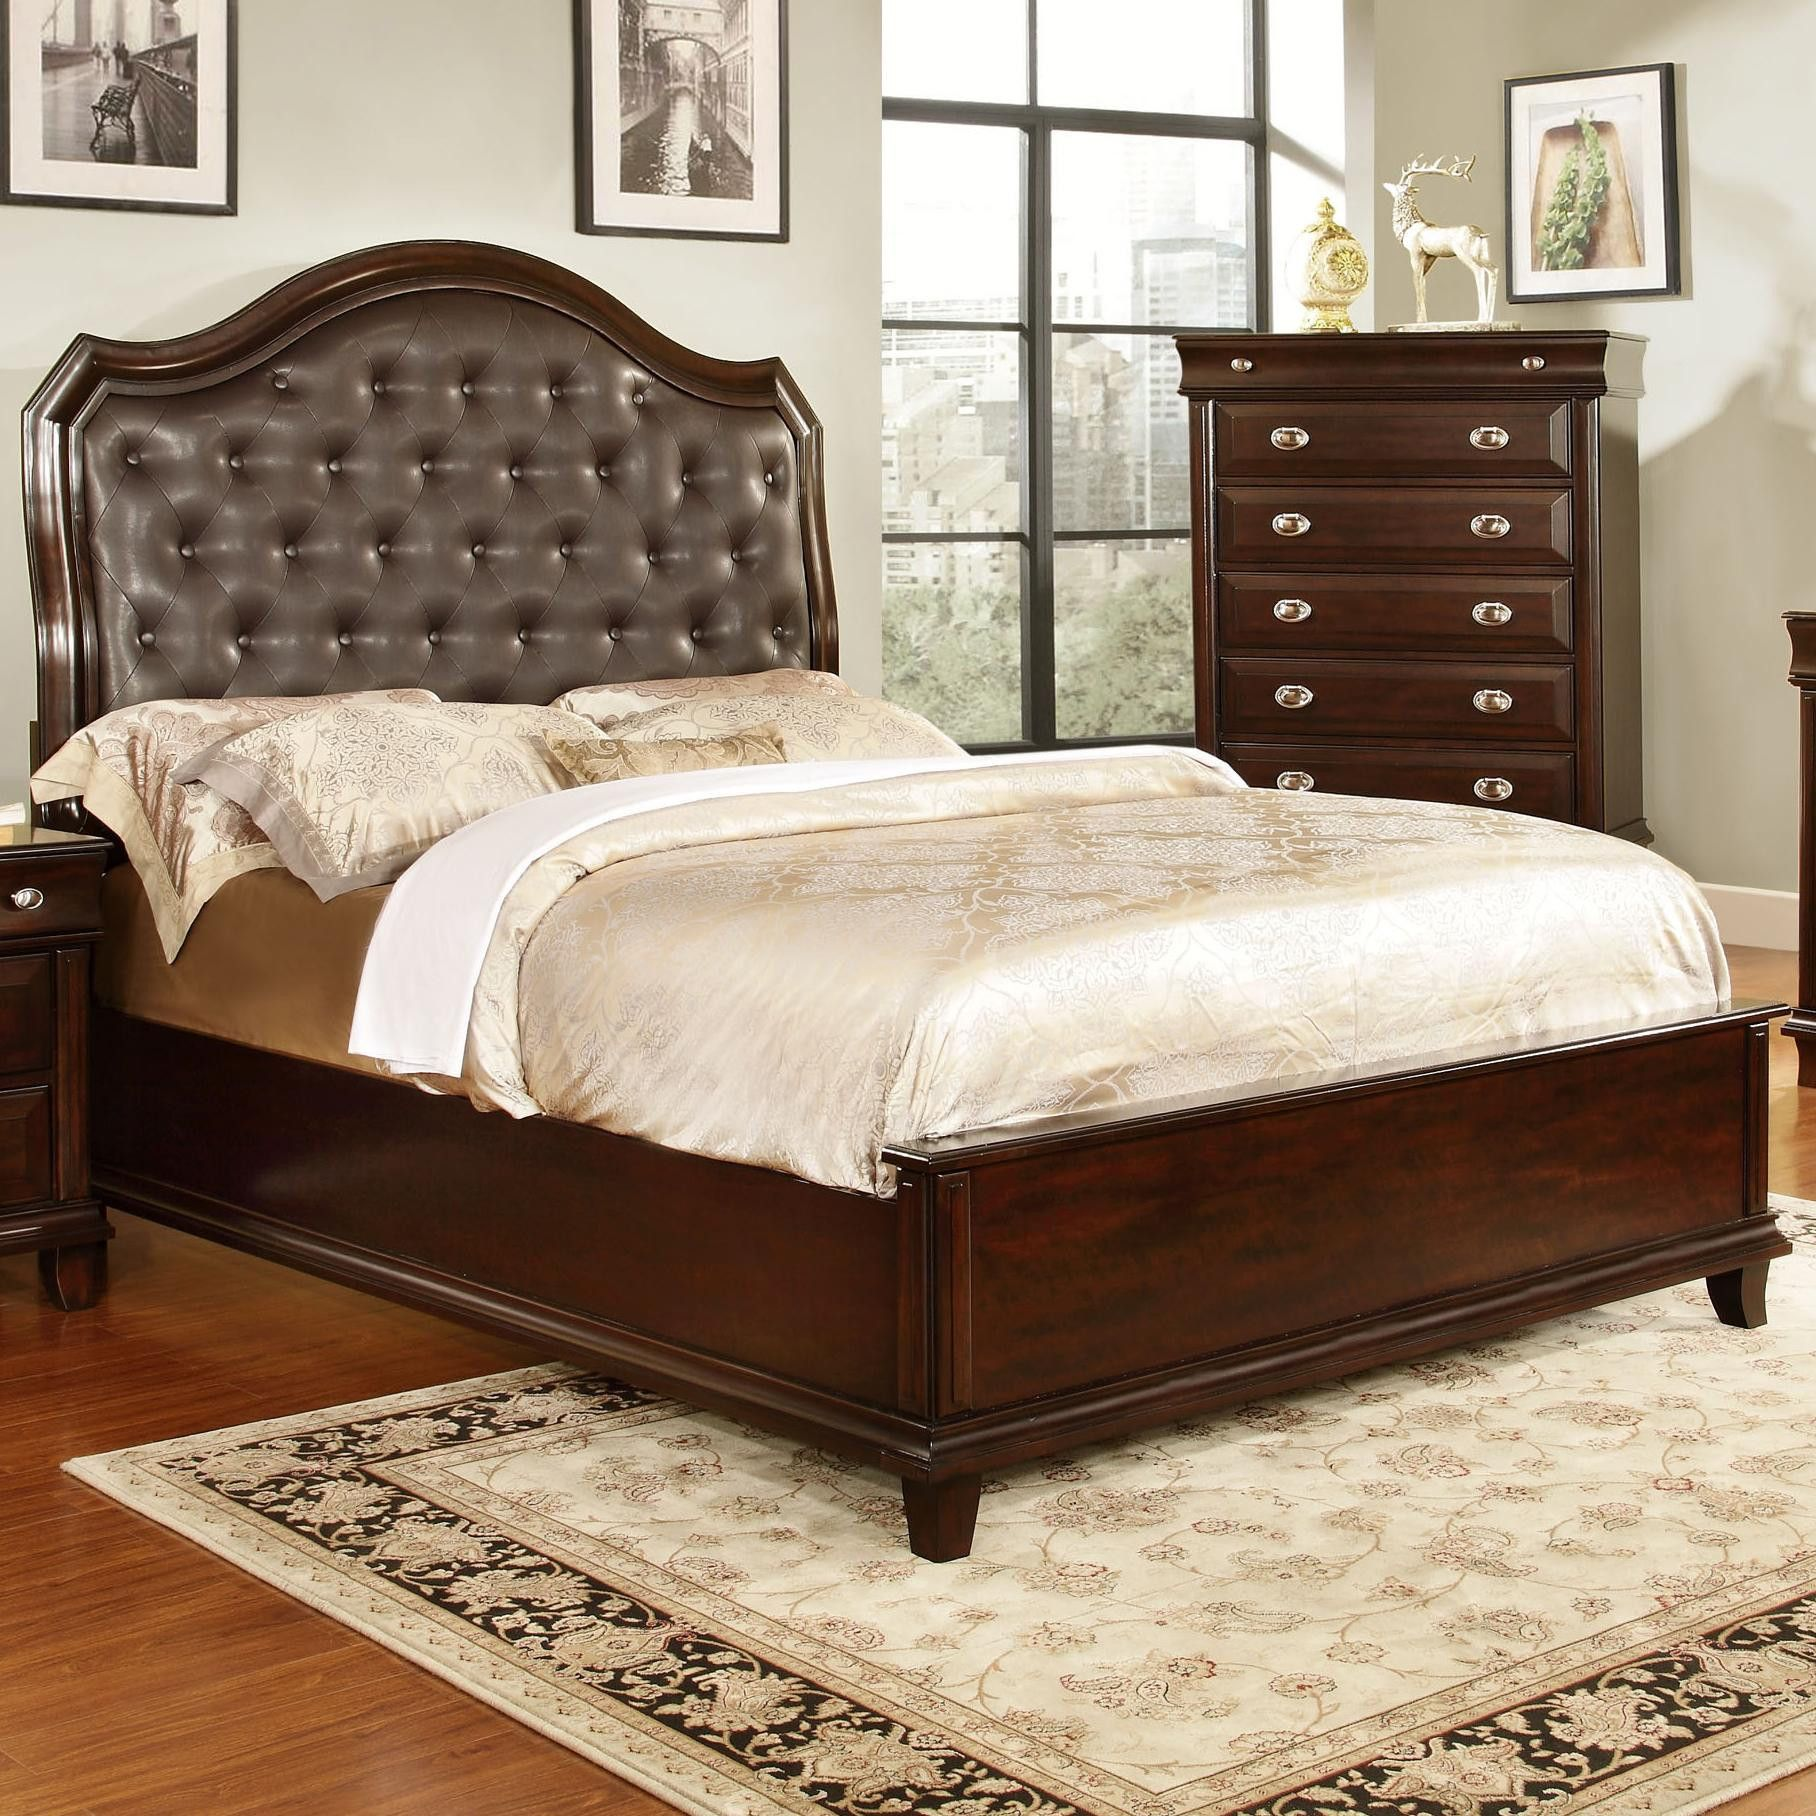 Geoffrey Upholstered Bed with Low Profile Footboard